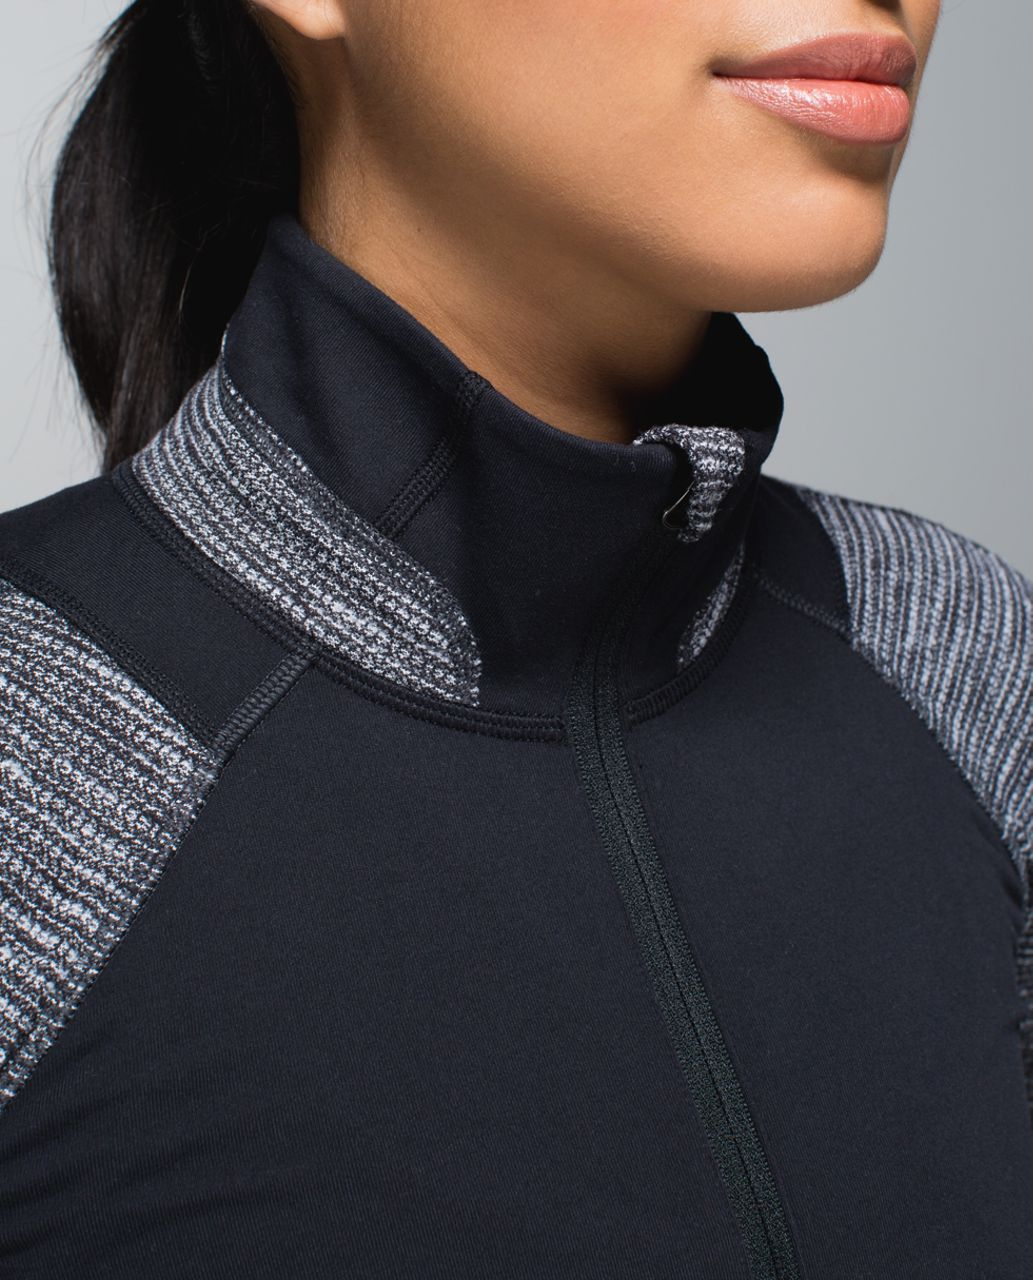 Lululemon Race Your Pace 1/2 Zip - Black / Coco Pique Black